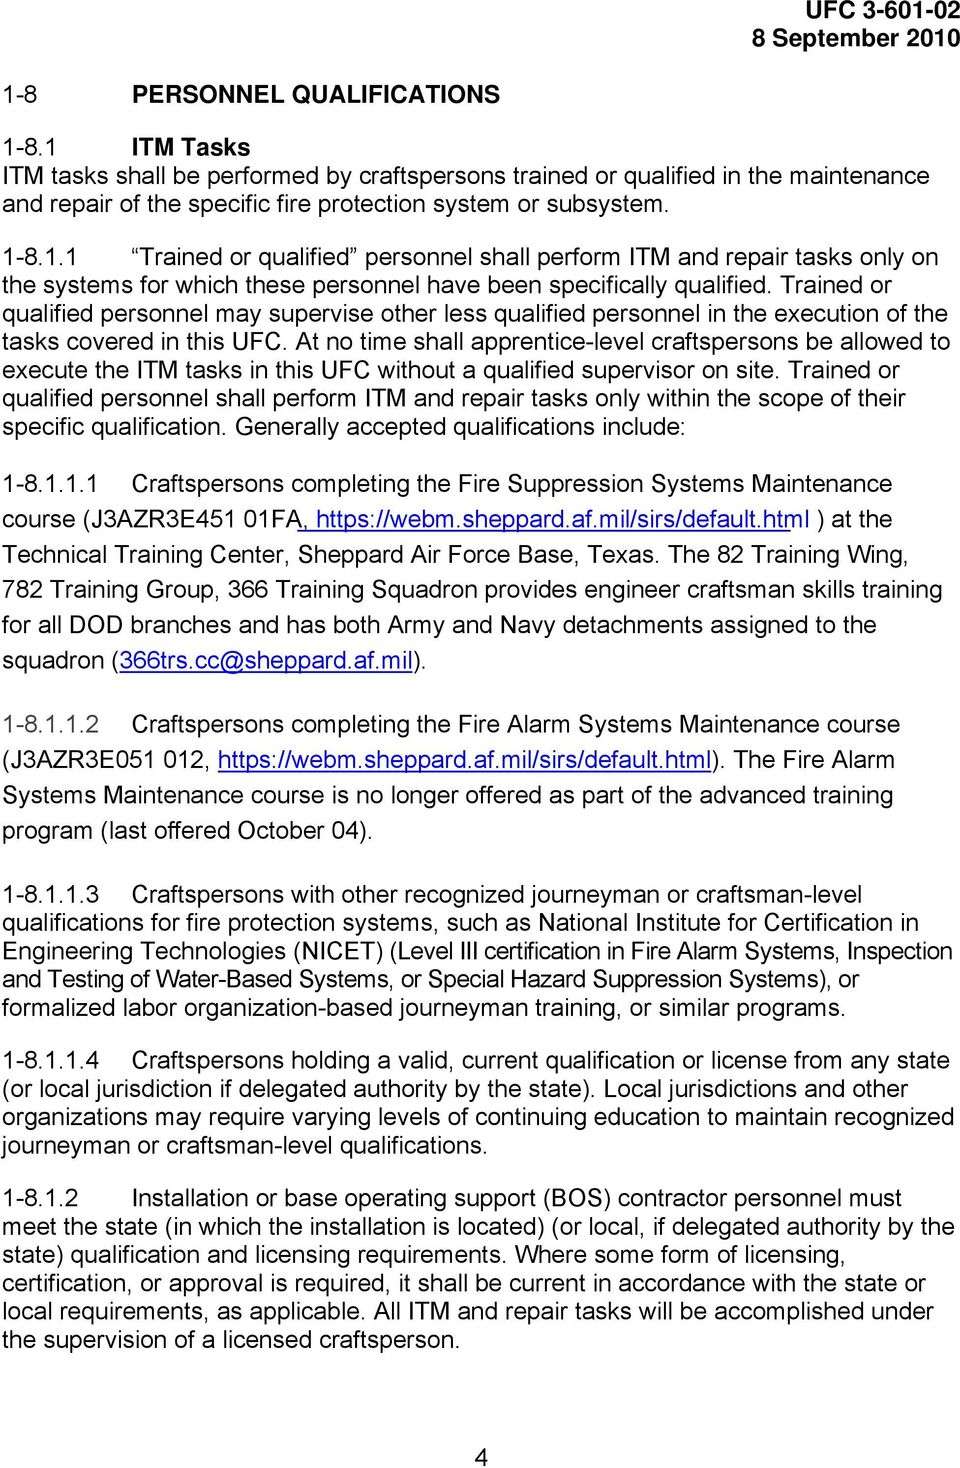 Fire Extinguisher Inspection Form Nfpa   Universal Network